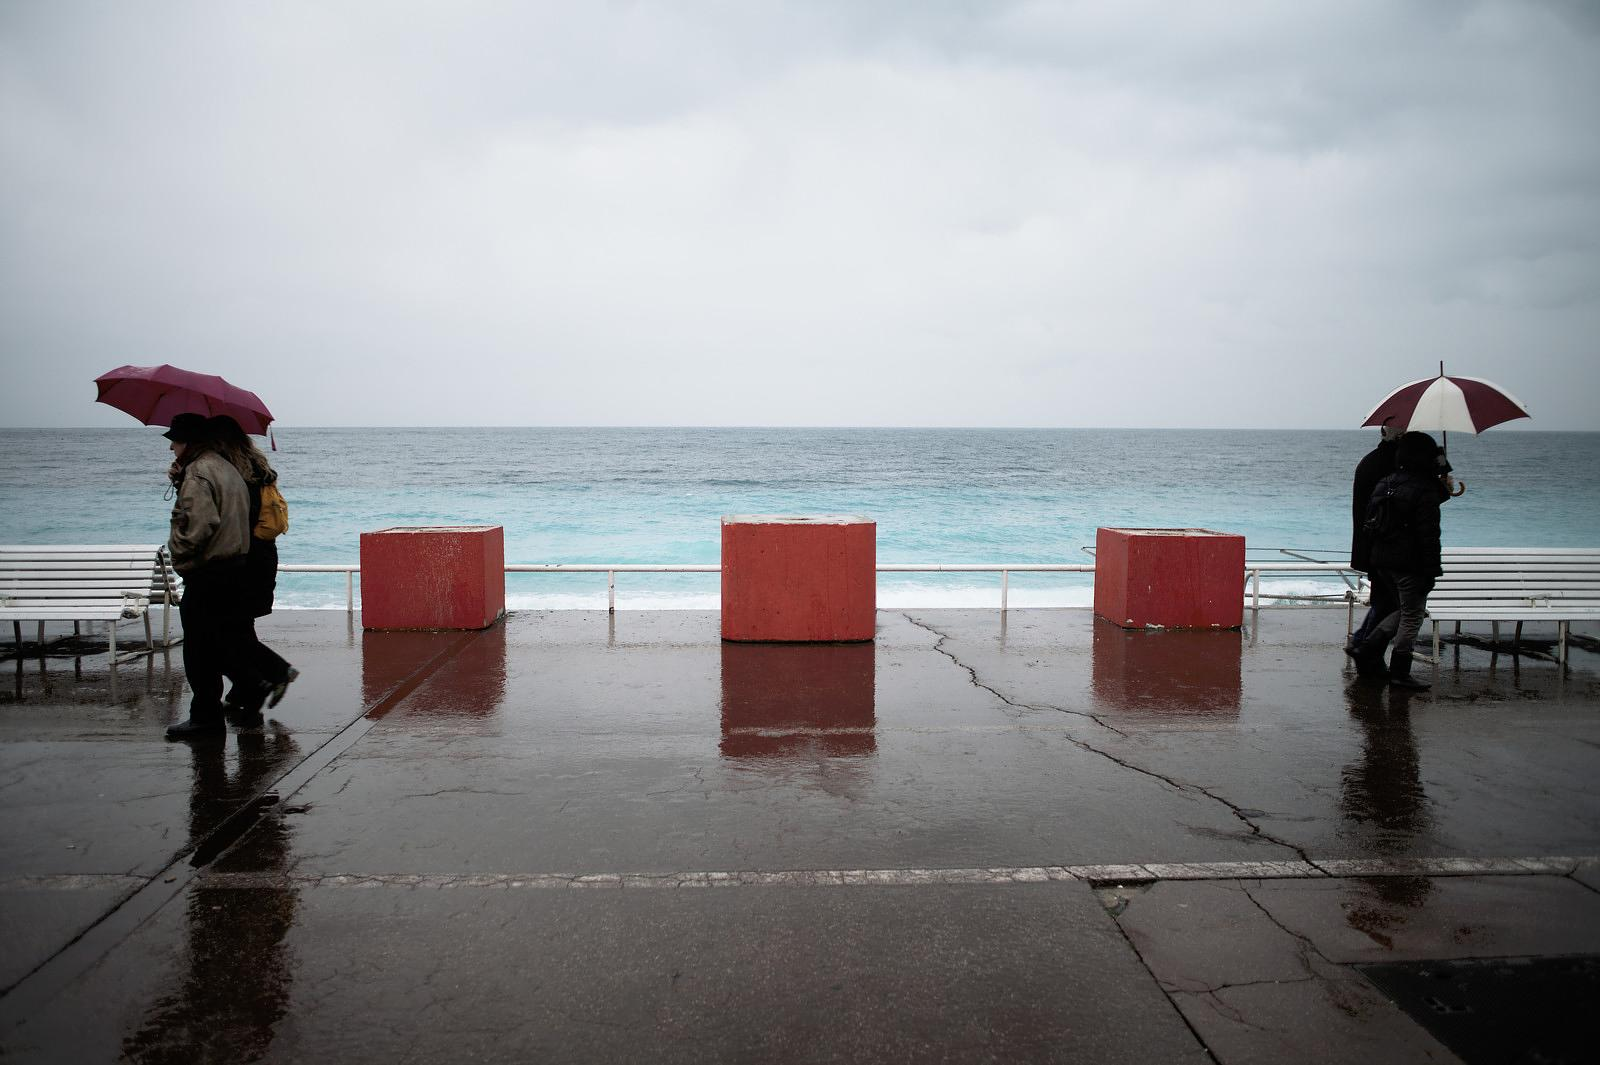 People on an afternoon walk on a rainy afternoon on the Promenade des anglais.